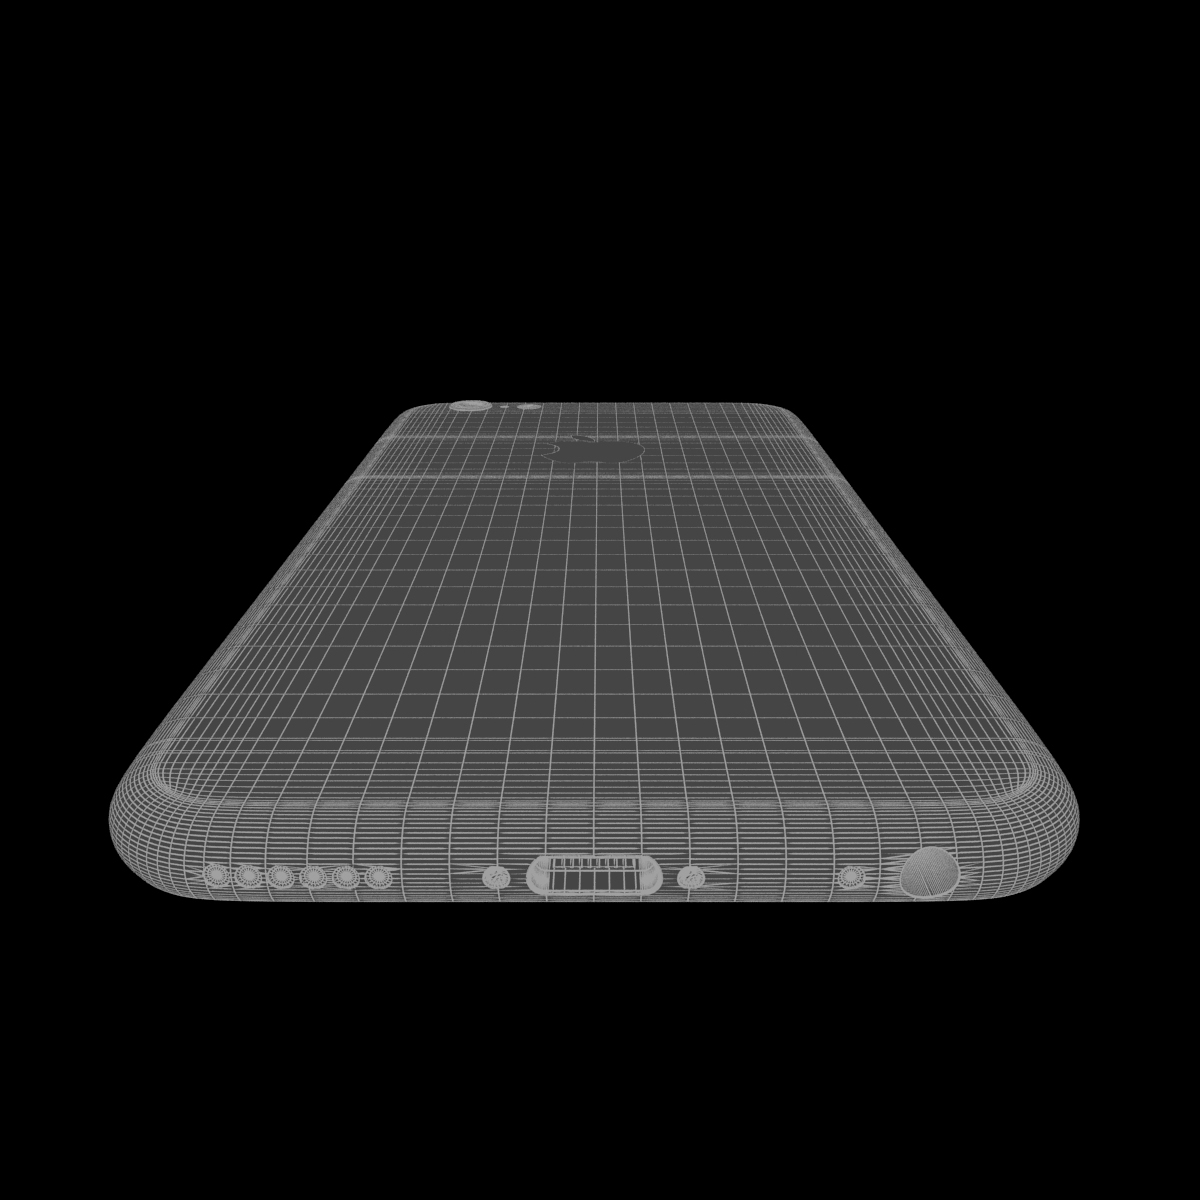 apple iphone 6s 3d model max fbx ma mb texture obj 278464